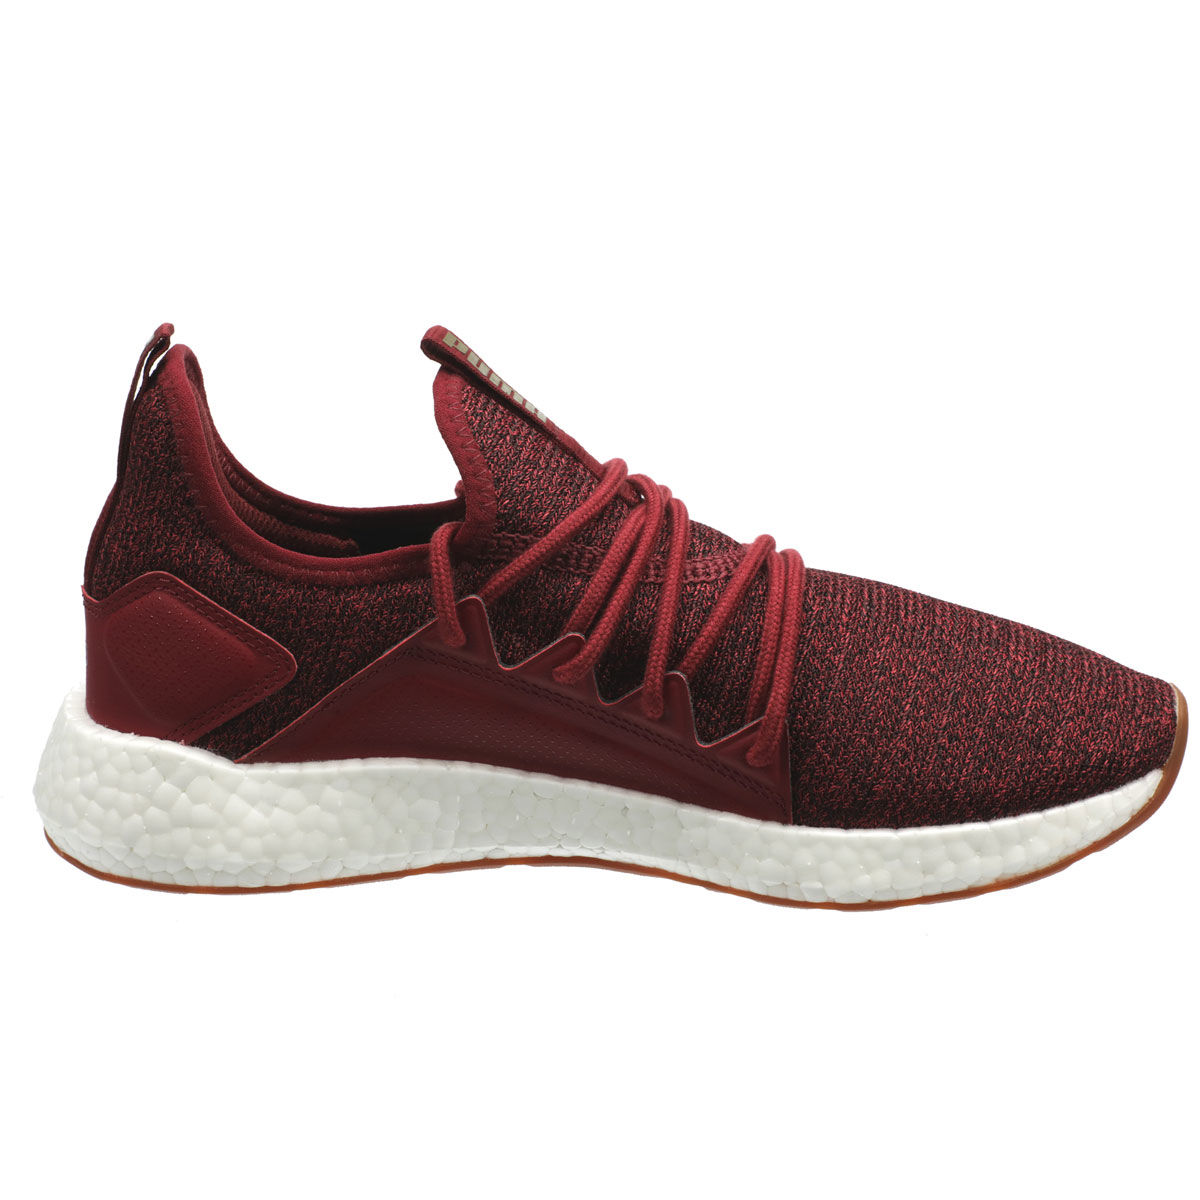 Puma NRGY Neko Knit Womens Casual Shoe